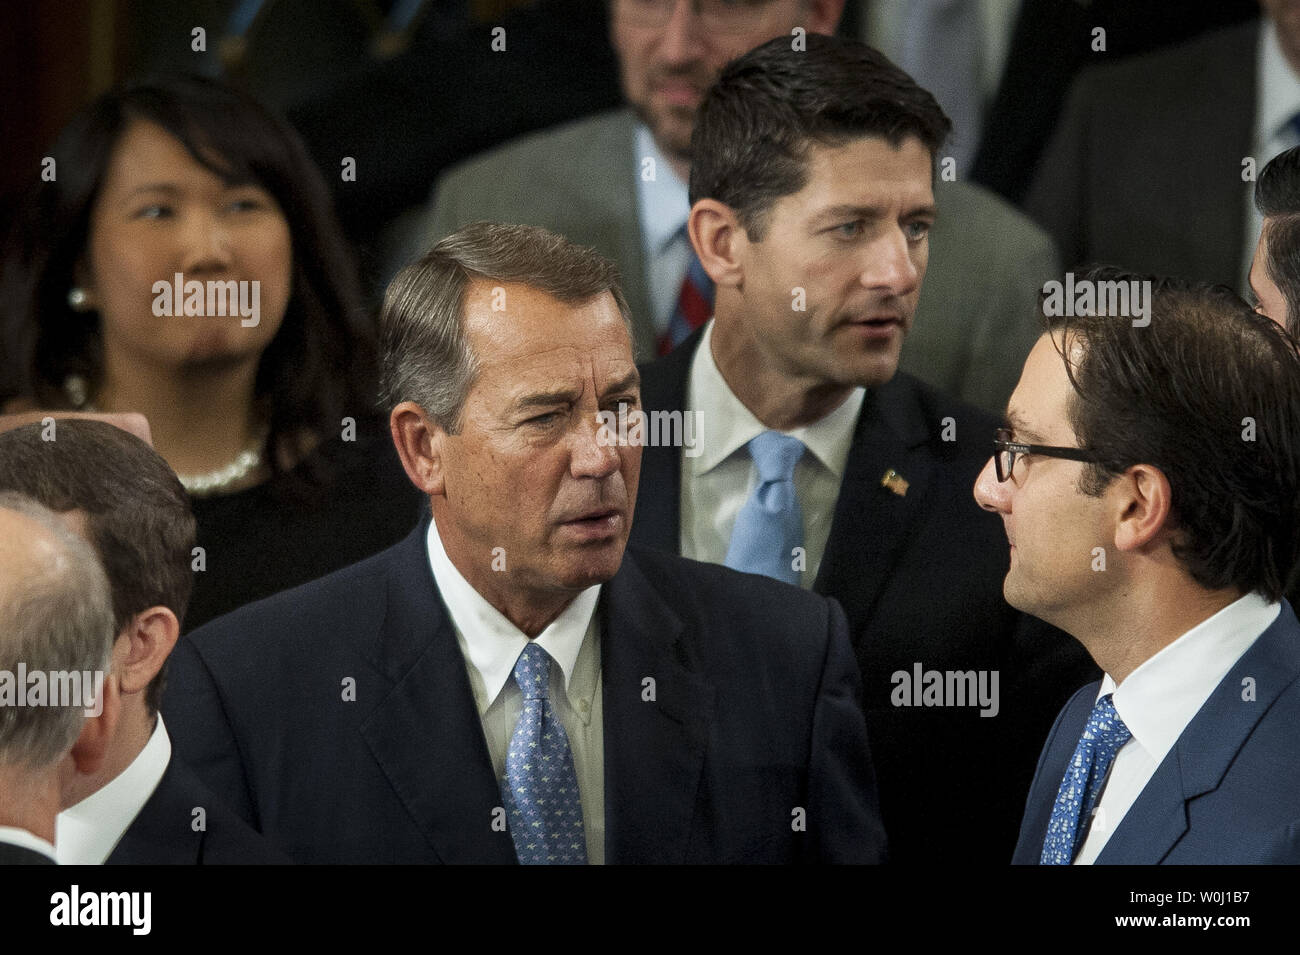 Speaker of the House John Boehner (R-OH) mingles with other Members of Congress as Republican caucus nominee for Speaker of the House, Rep. Paul Ryan (R-WI) stands nearby on the floor of the House of Representatives on on October 29, 2015 in Washington, D.C.  Photo by Pete Marovich/UPI - Stock Image